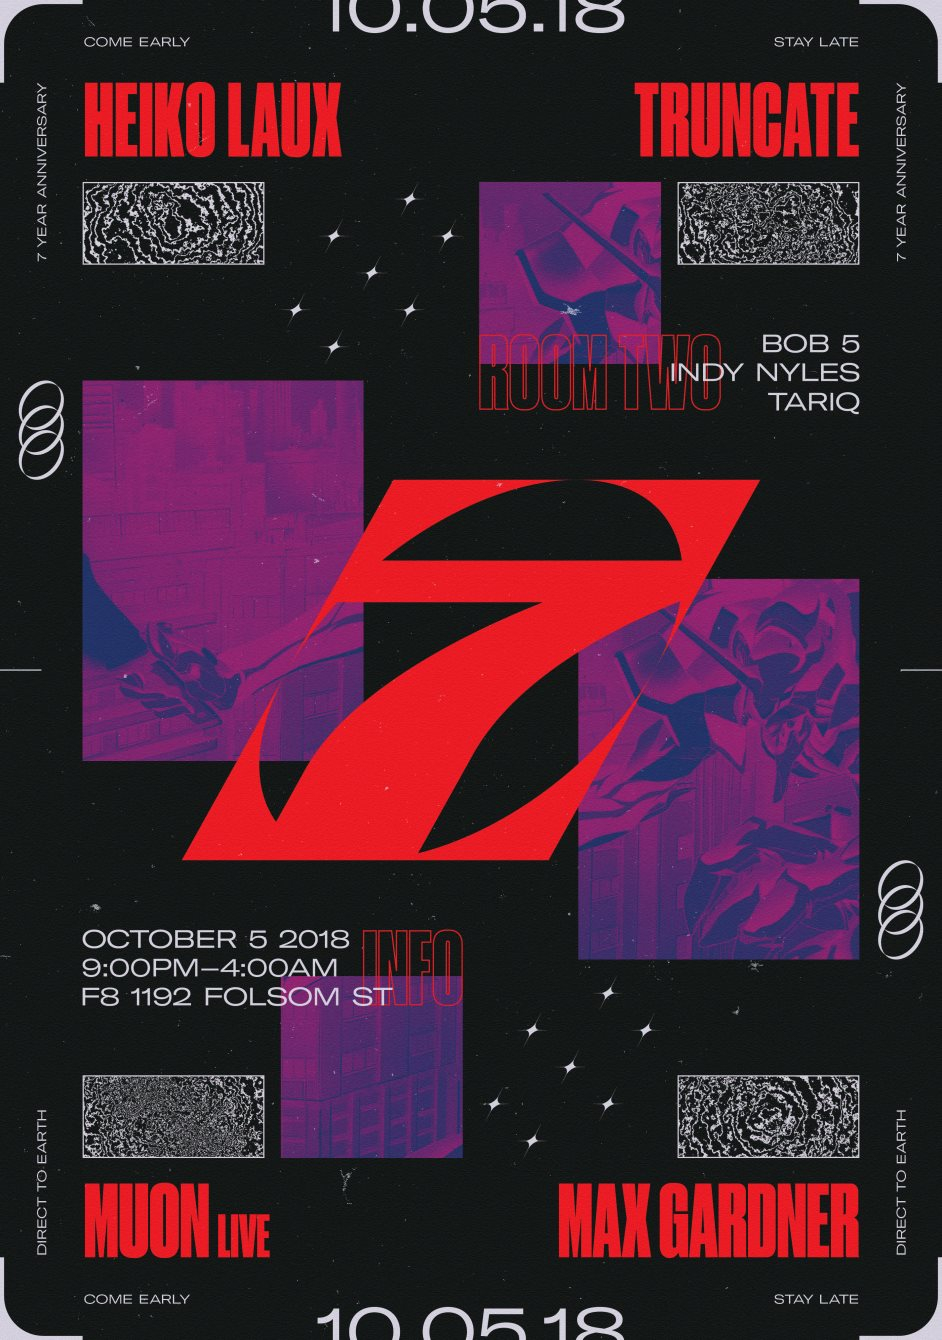 7 Years of Direct to Earth with Heiko Laux and Truncate - Flyer front